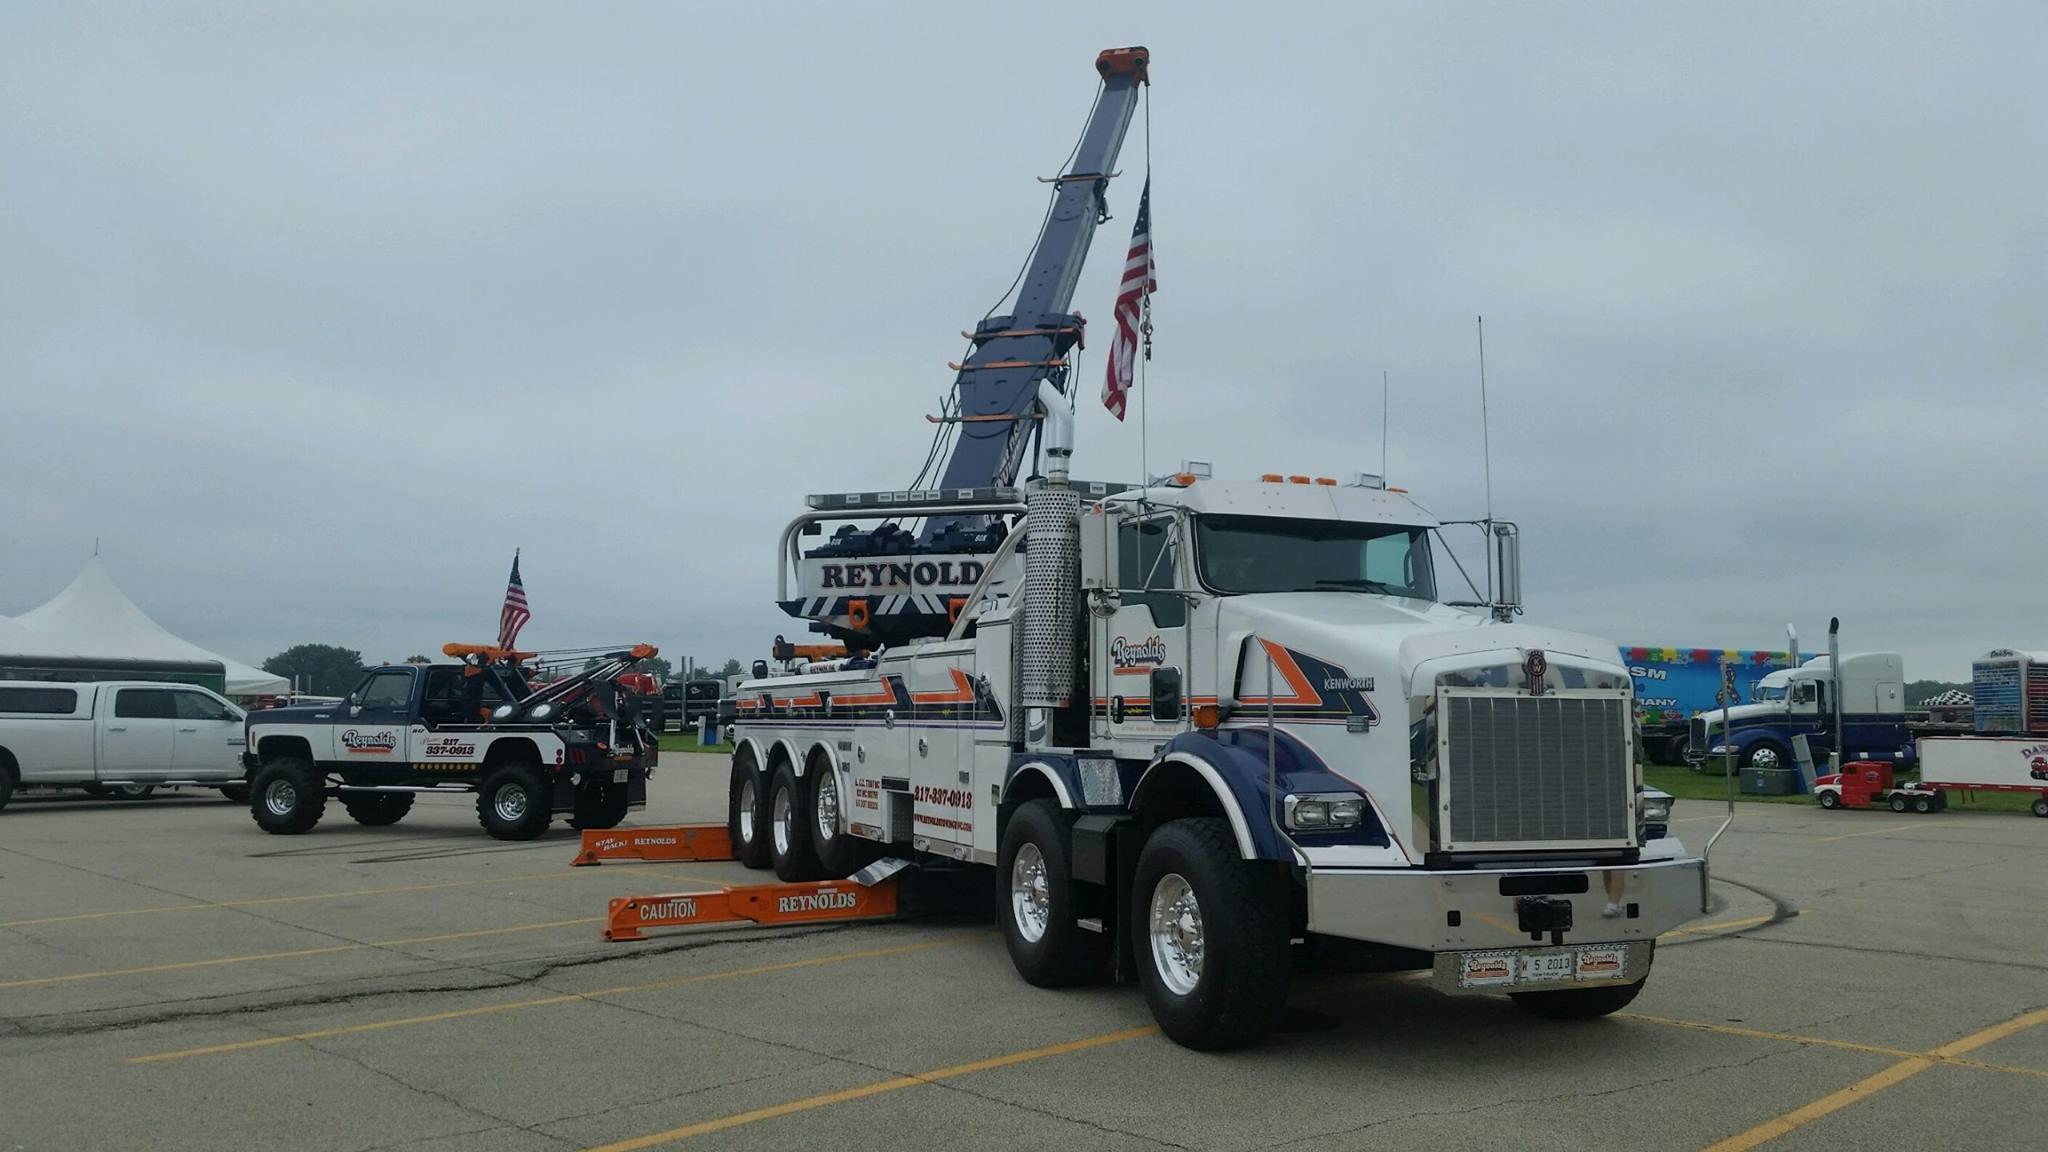 Reynolds Towing Service image 4